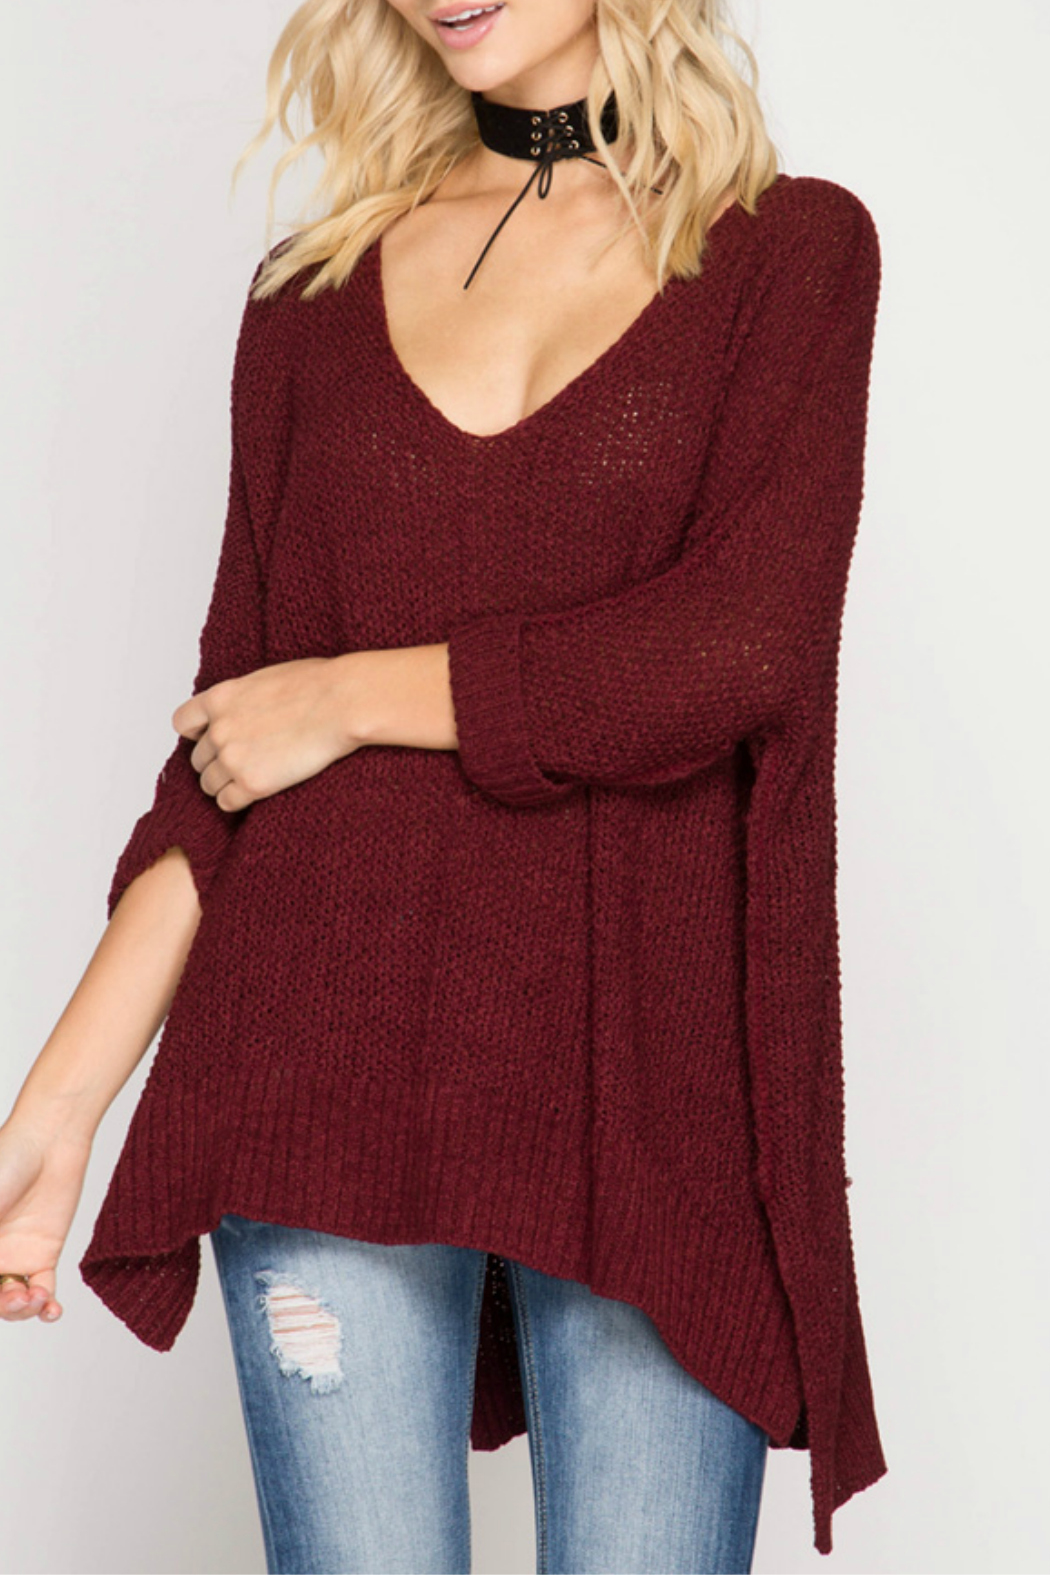 She + Sky 3/4 SLEEVE HI LOW SWEATER WITH FOLDED CUFFS - Main Image